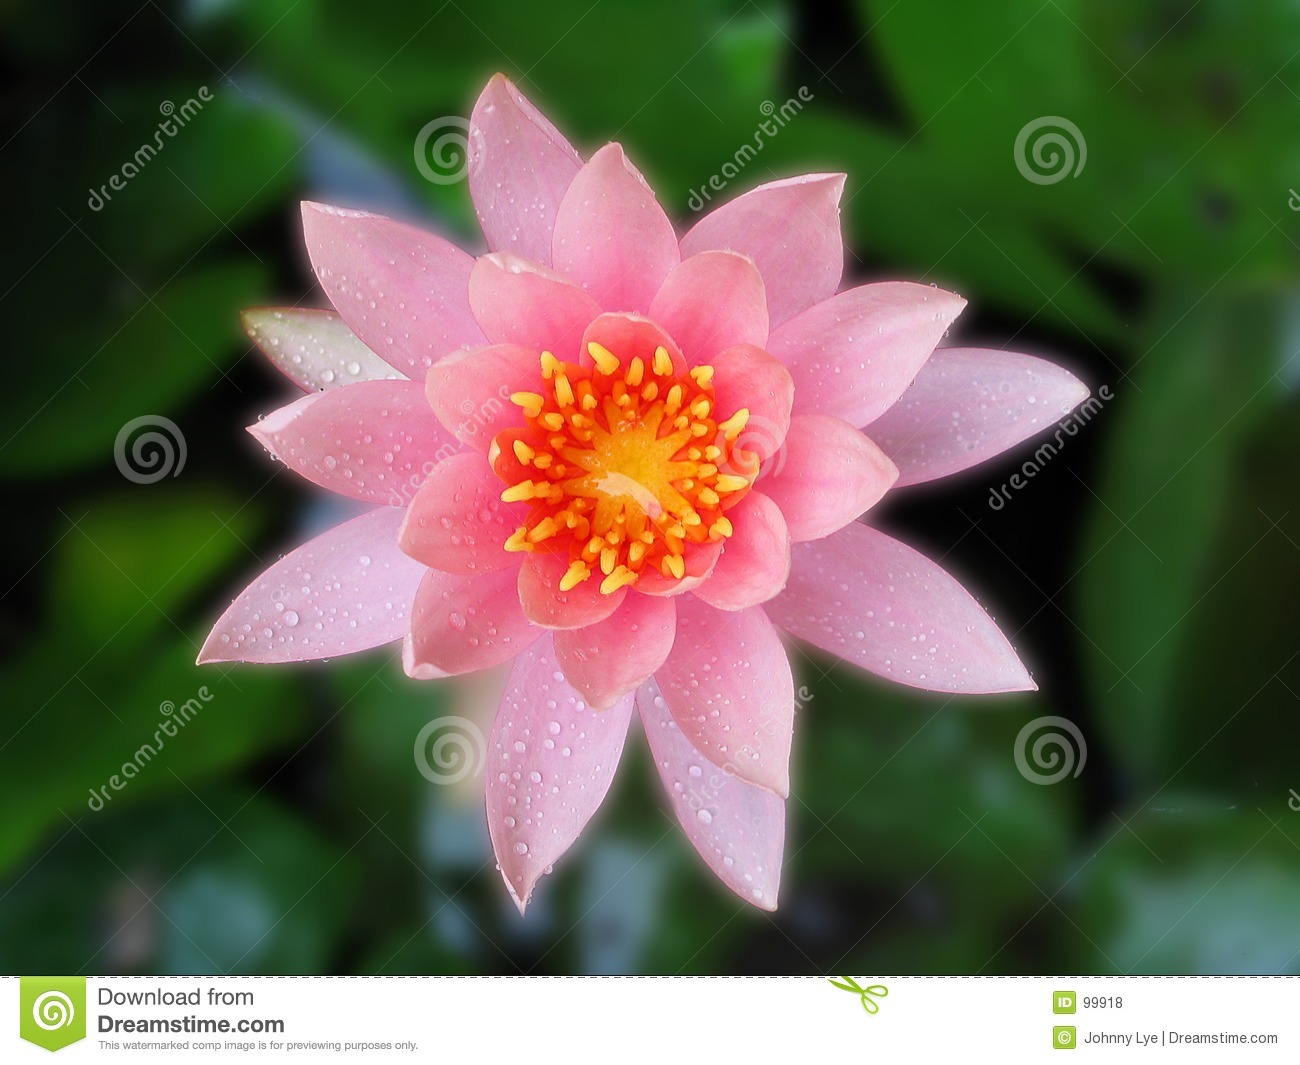 lotus flower royalty free stock photos  image, Natural flower